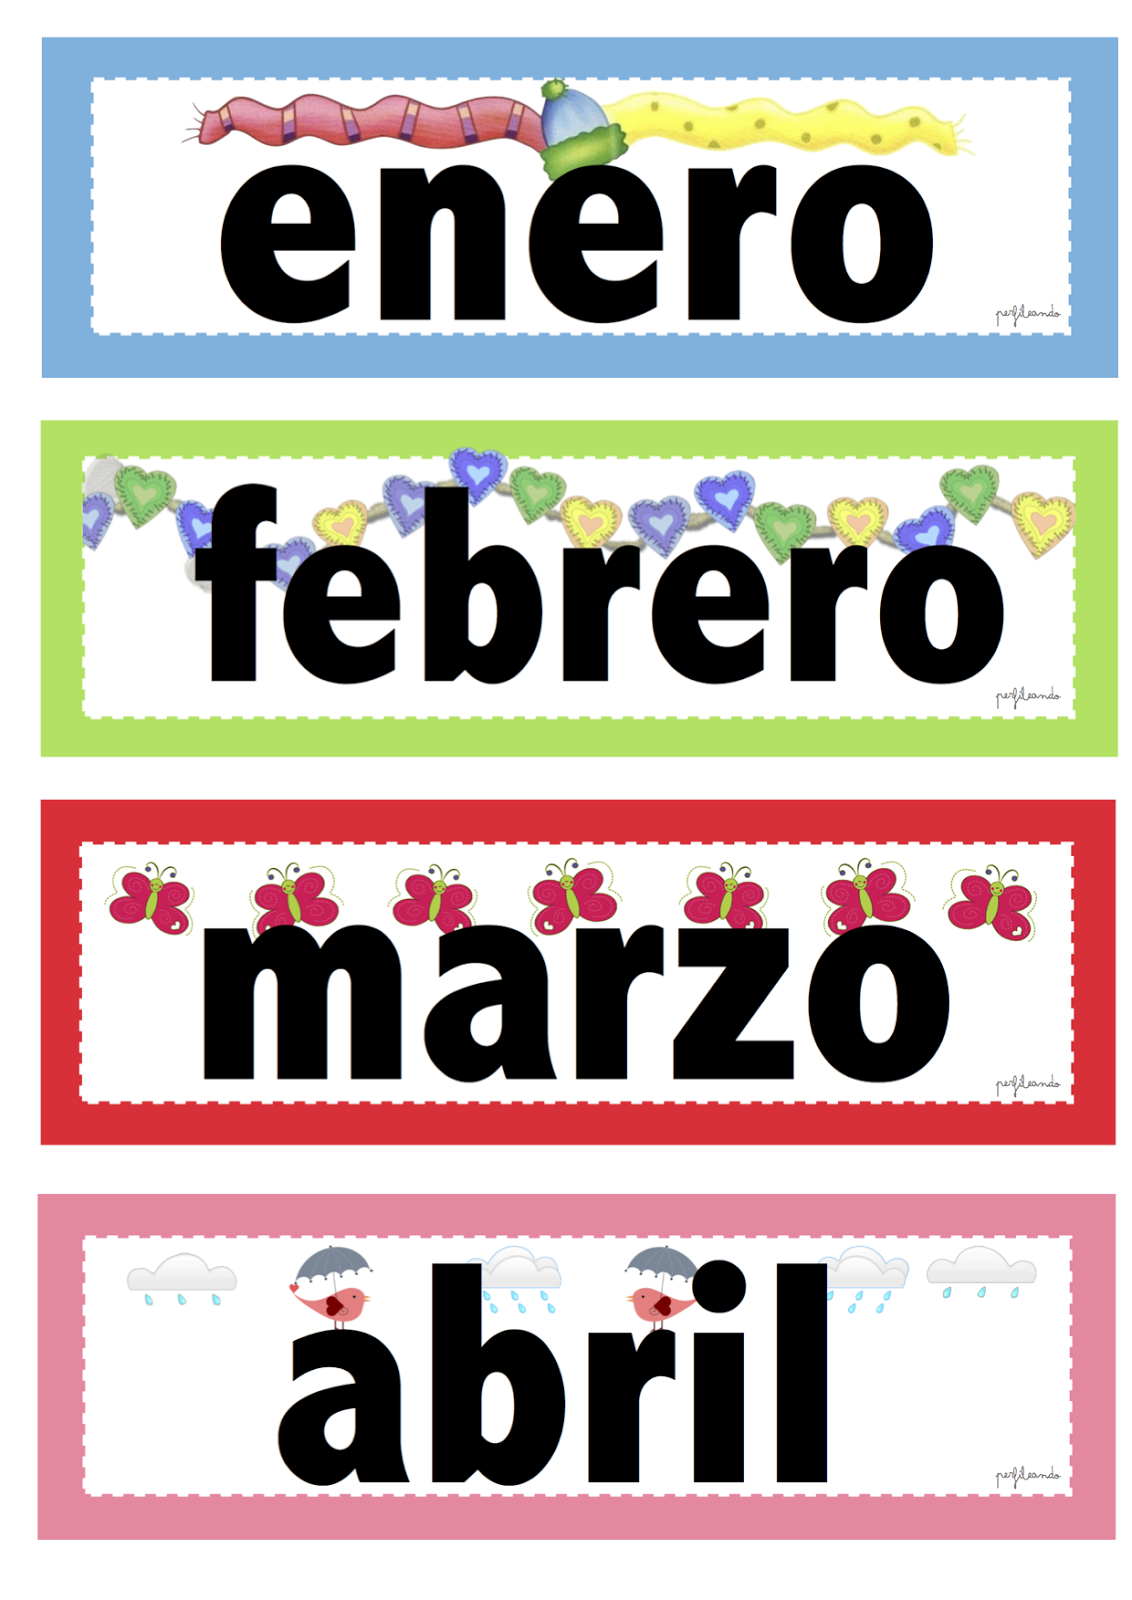 Los Meses Del Ano En Ingles Nombre De Los Meses Del Ano Pictures To Pin On Pinterest